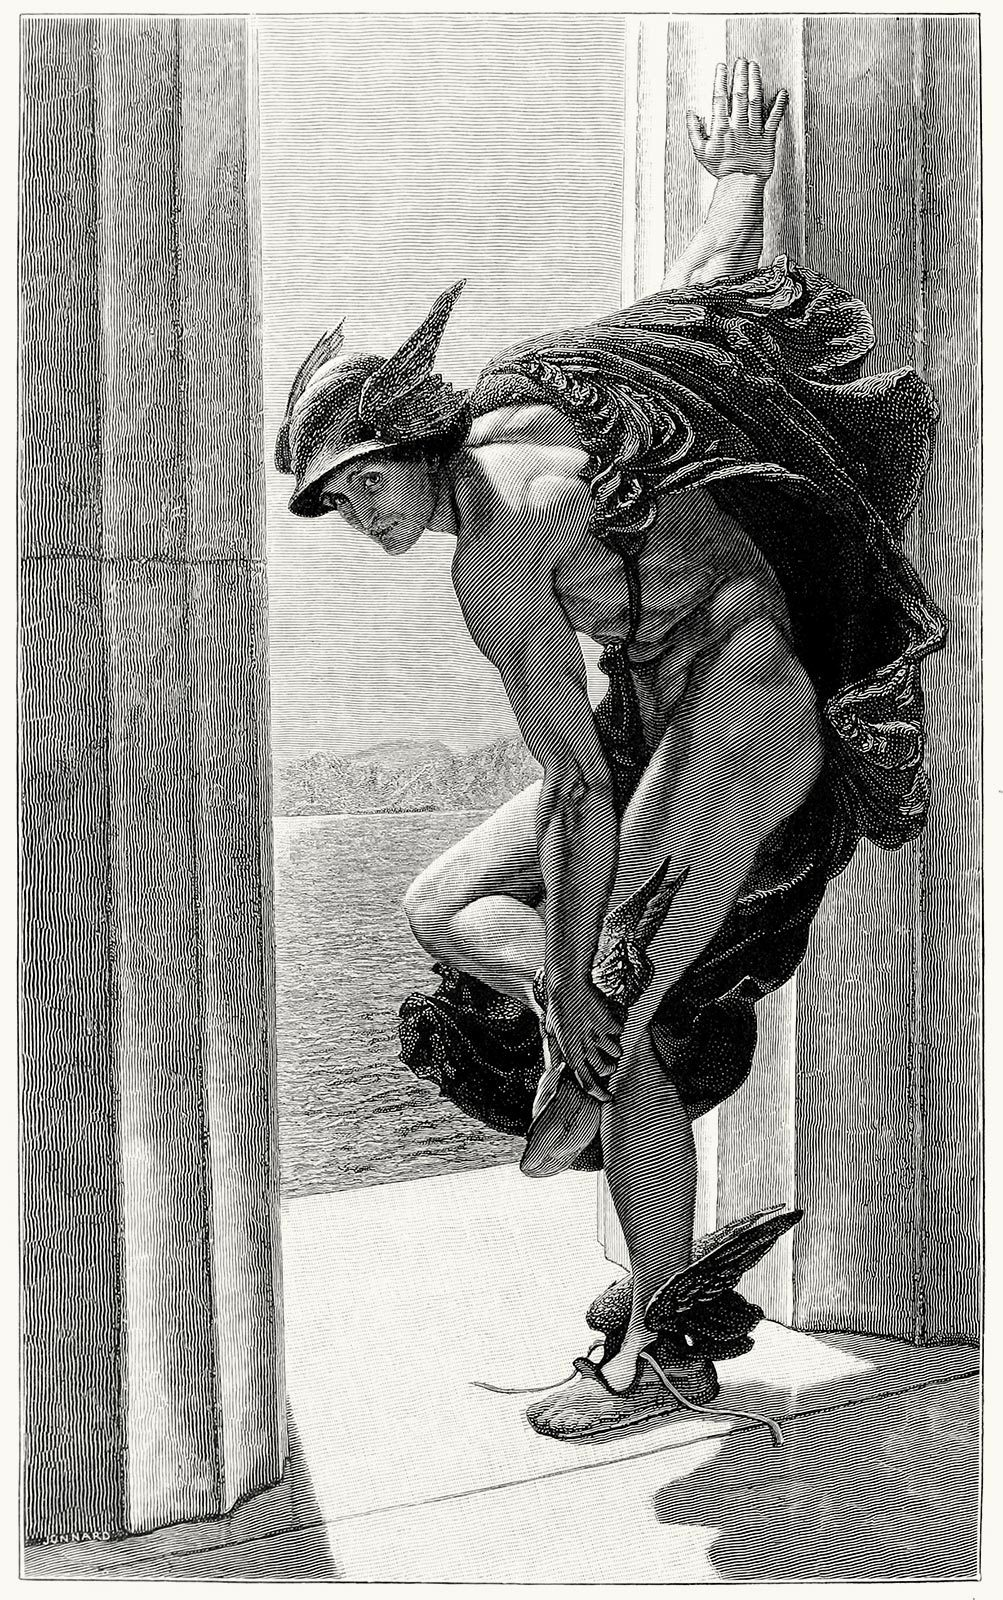 oldbookillustrations:  Hermes, after a painting by W. B. Richmond.  From The magazine of art vol. 9, London, Paris, New York, Melbourne, 1886.  (Source: archive.org)